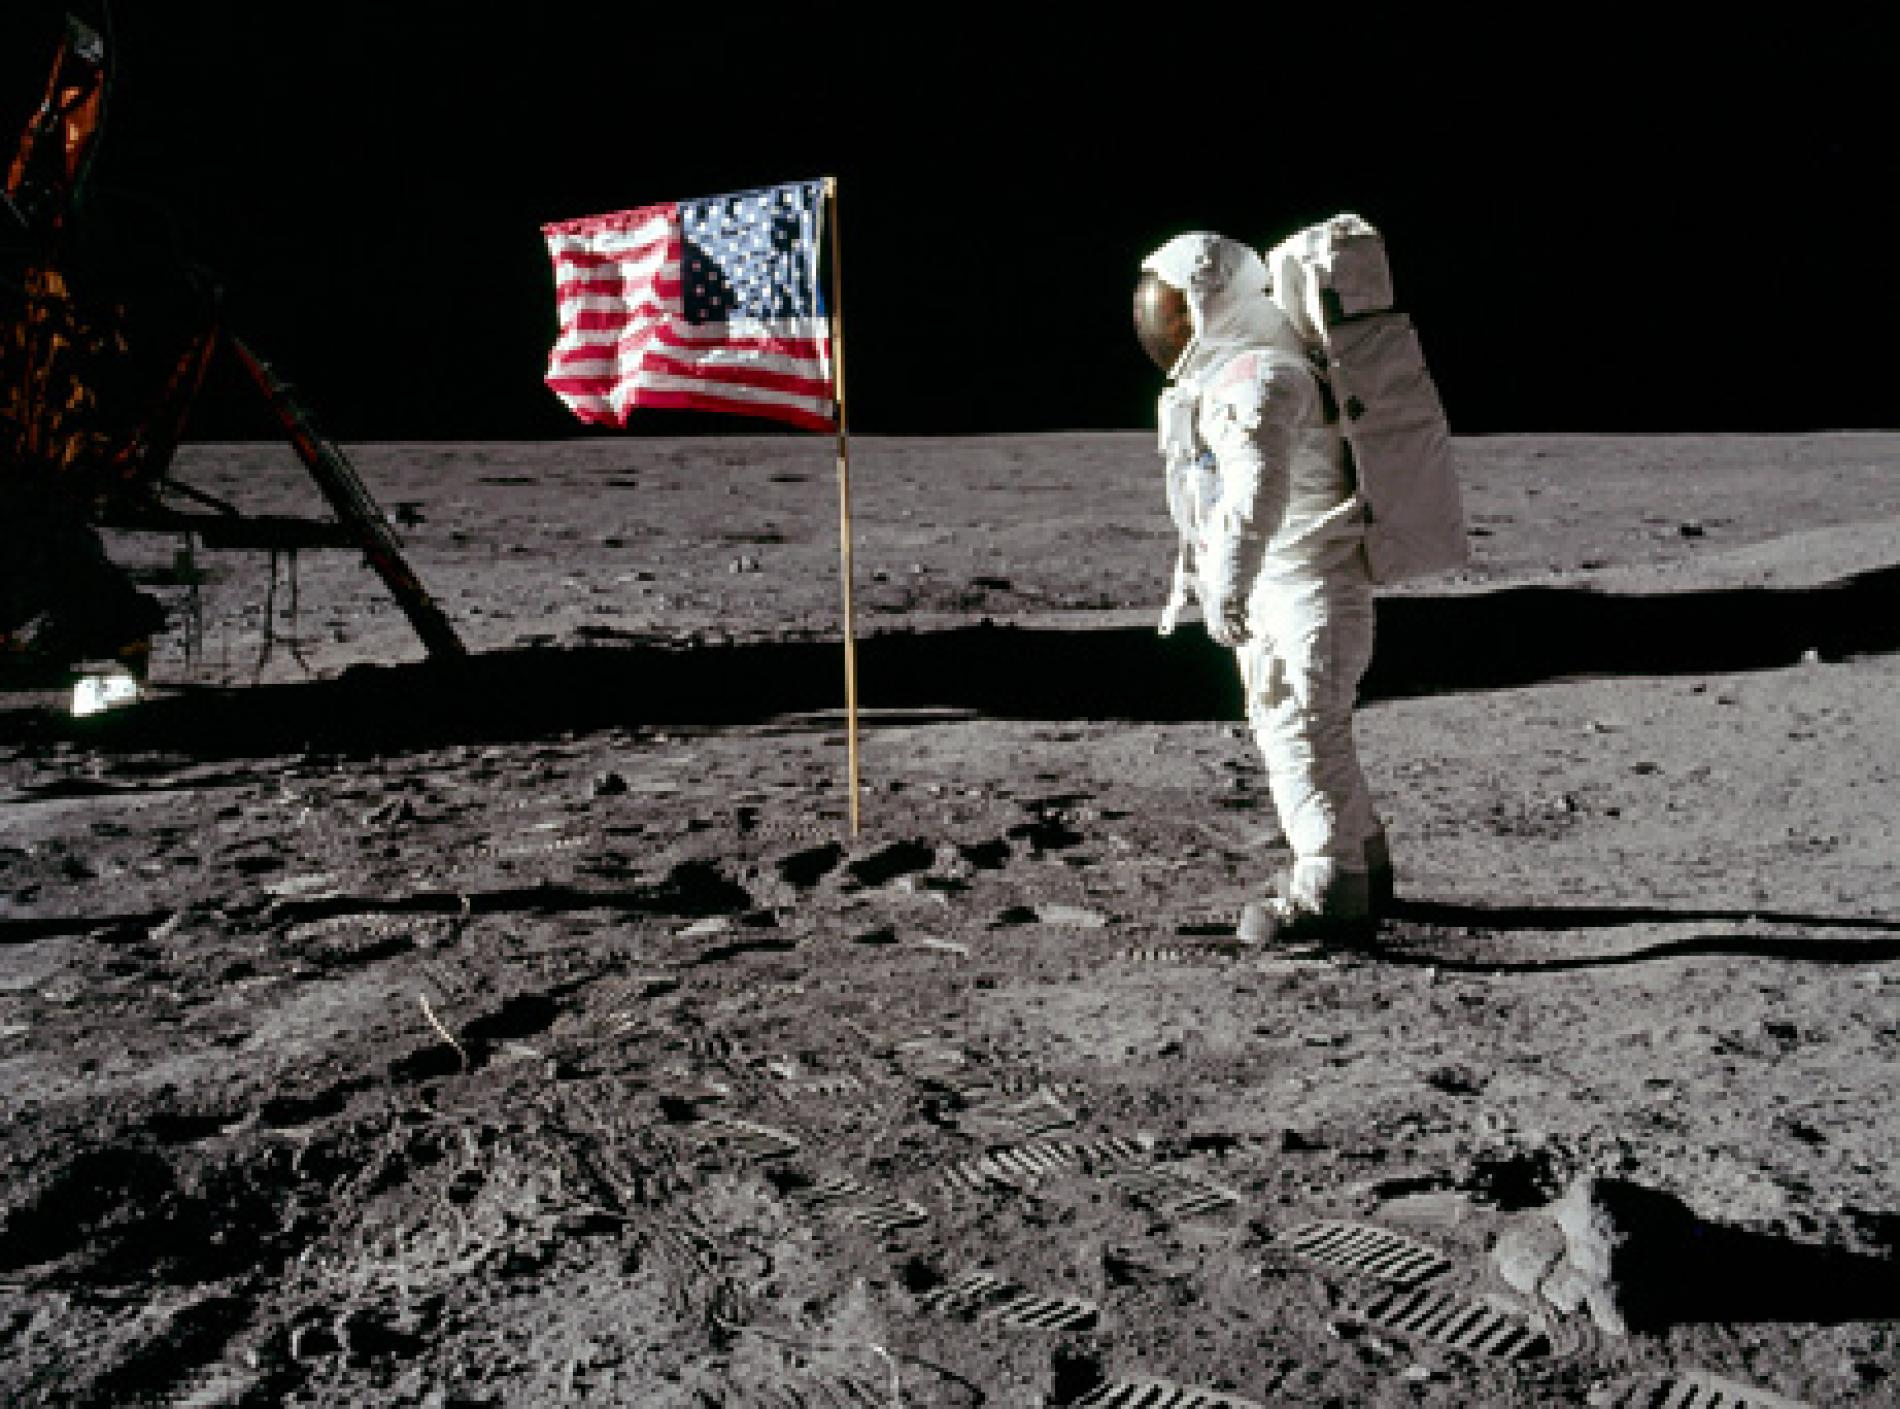 090716 01 moon hoax flag waving big.ngsversion.1515796398868.adapt.1900.1